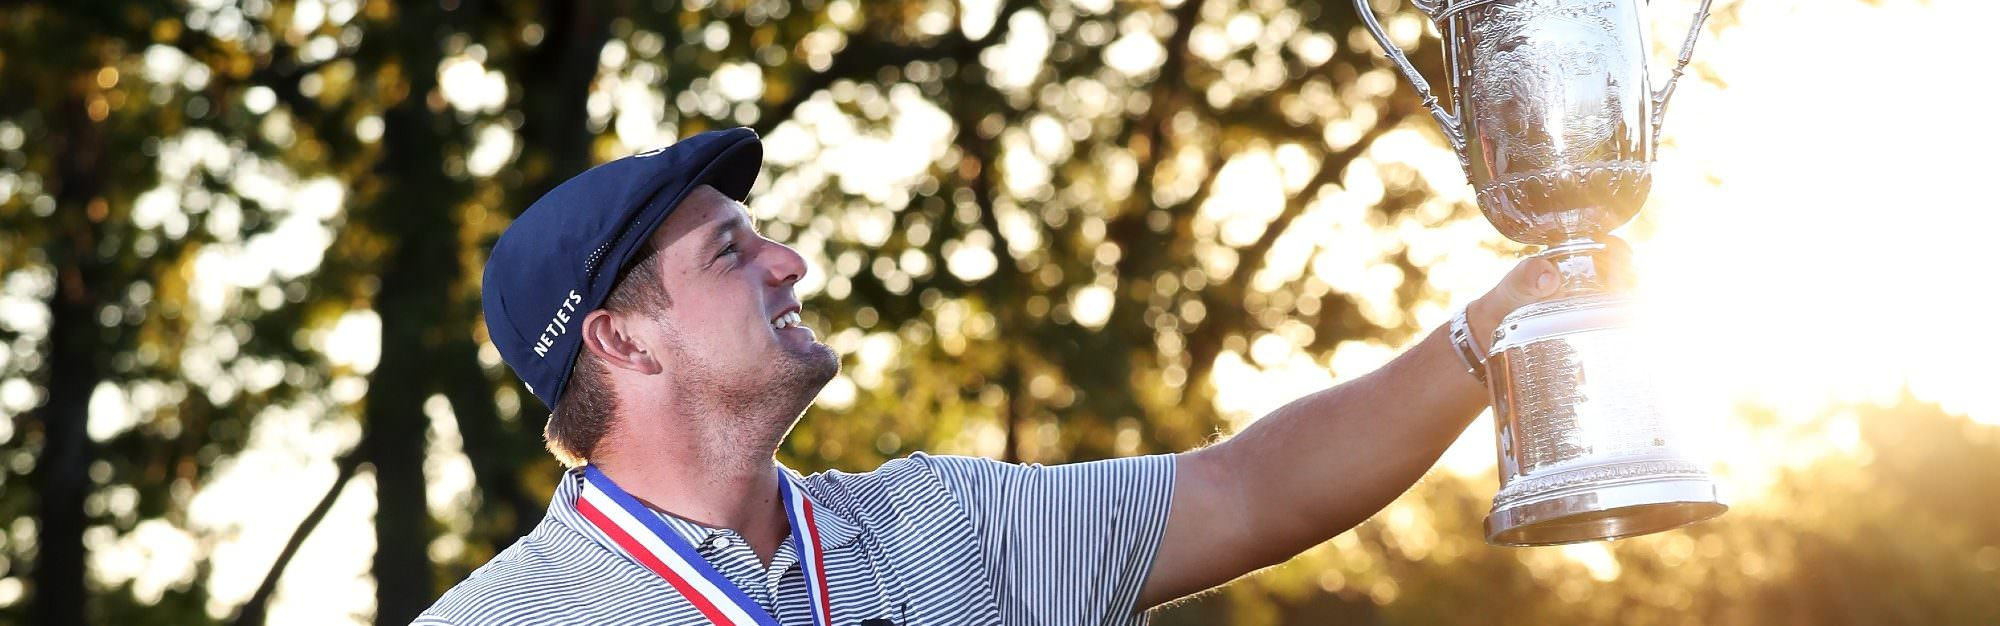 DeChambeau justifies unconventional methods with US Open glory